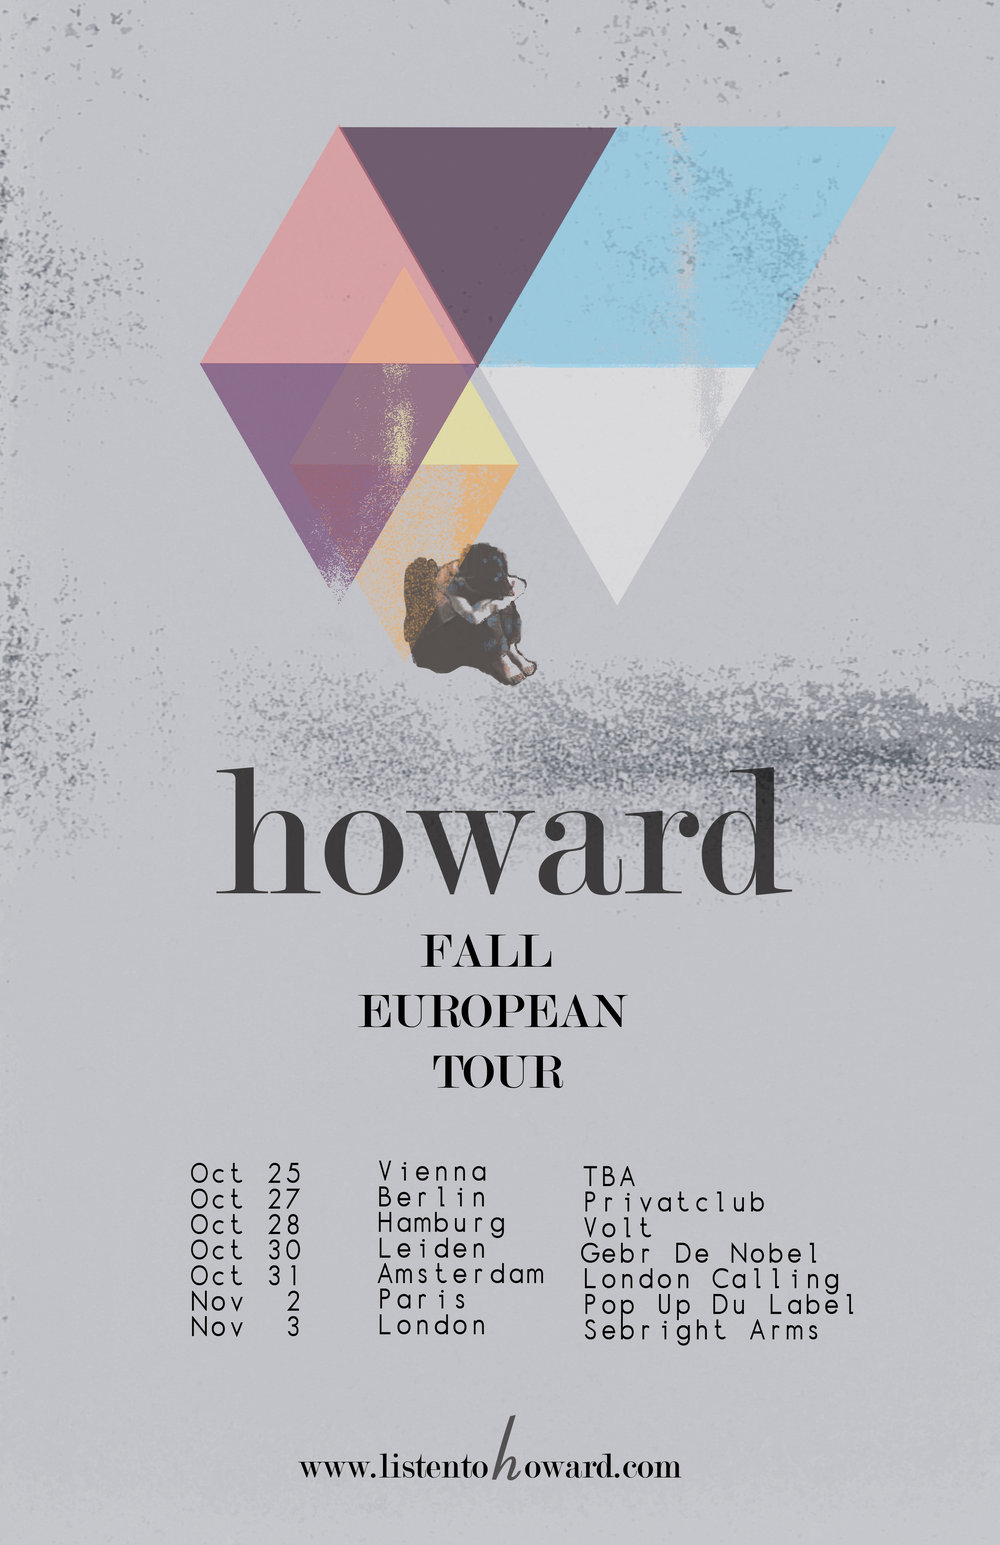 Howard-Europe-Admat-Fall-15-Final.jpg